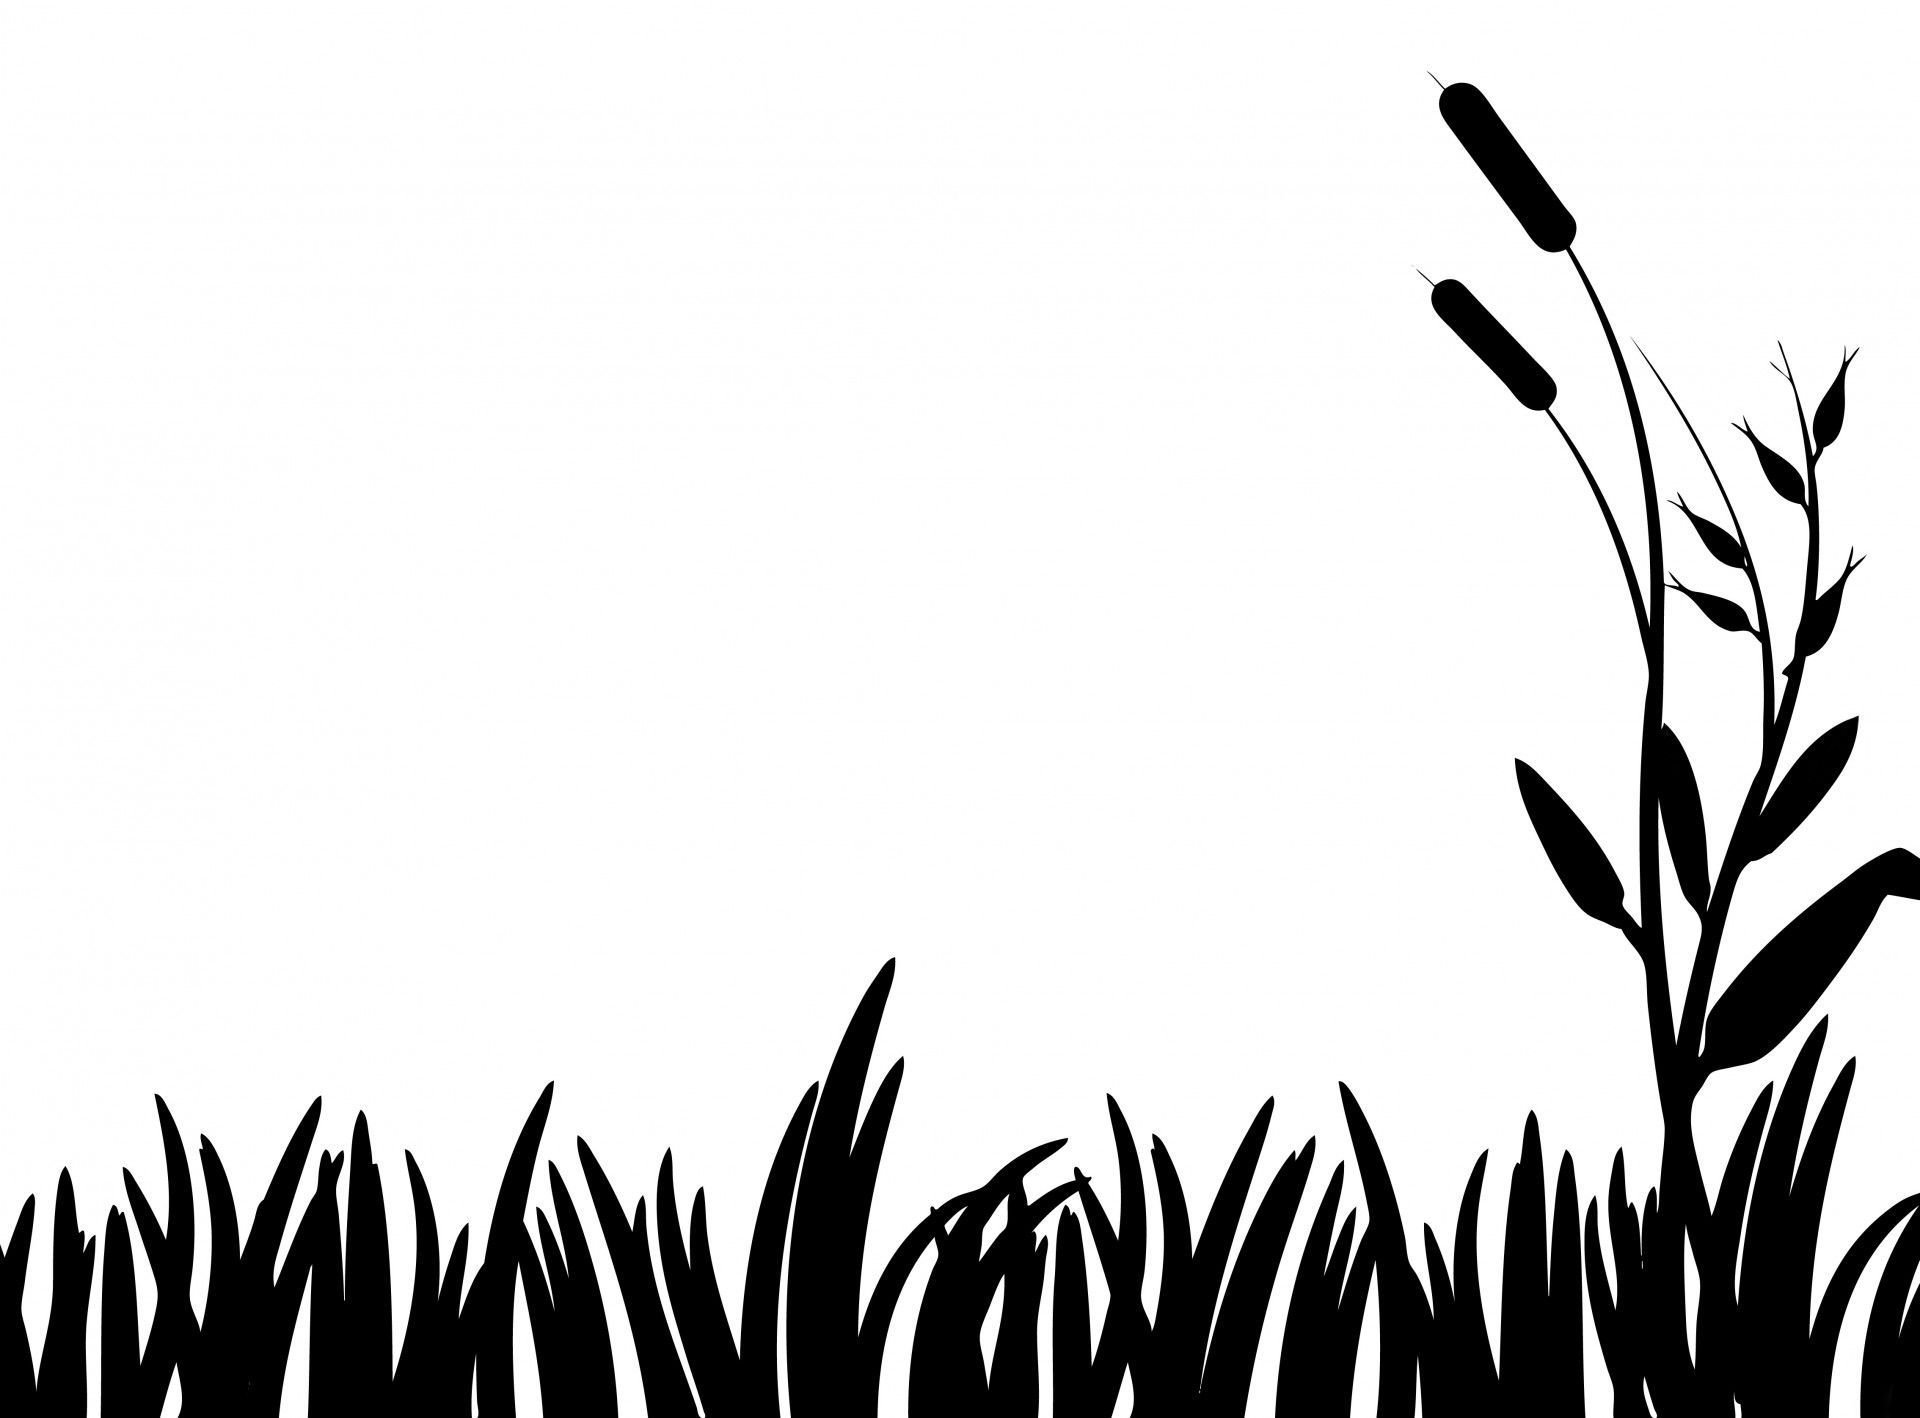 Grass Silhouette Clipart Free Stock Photo